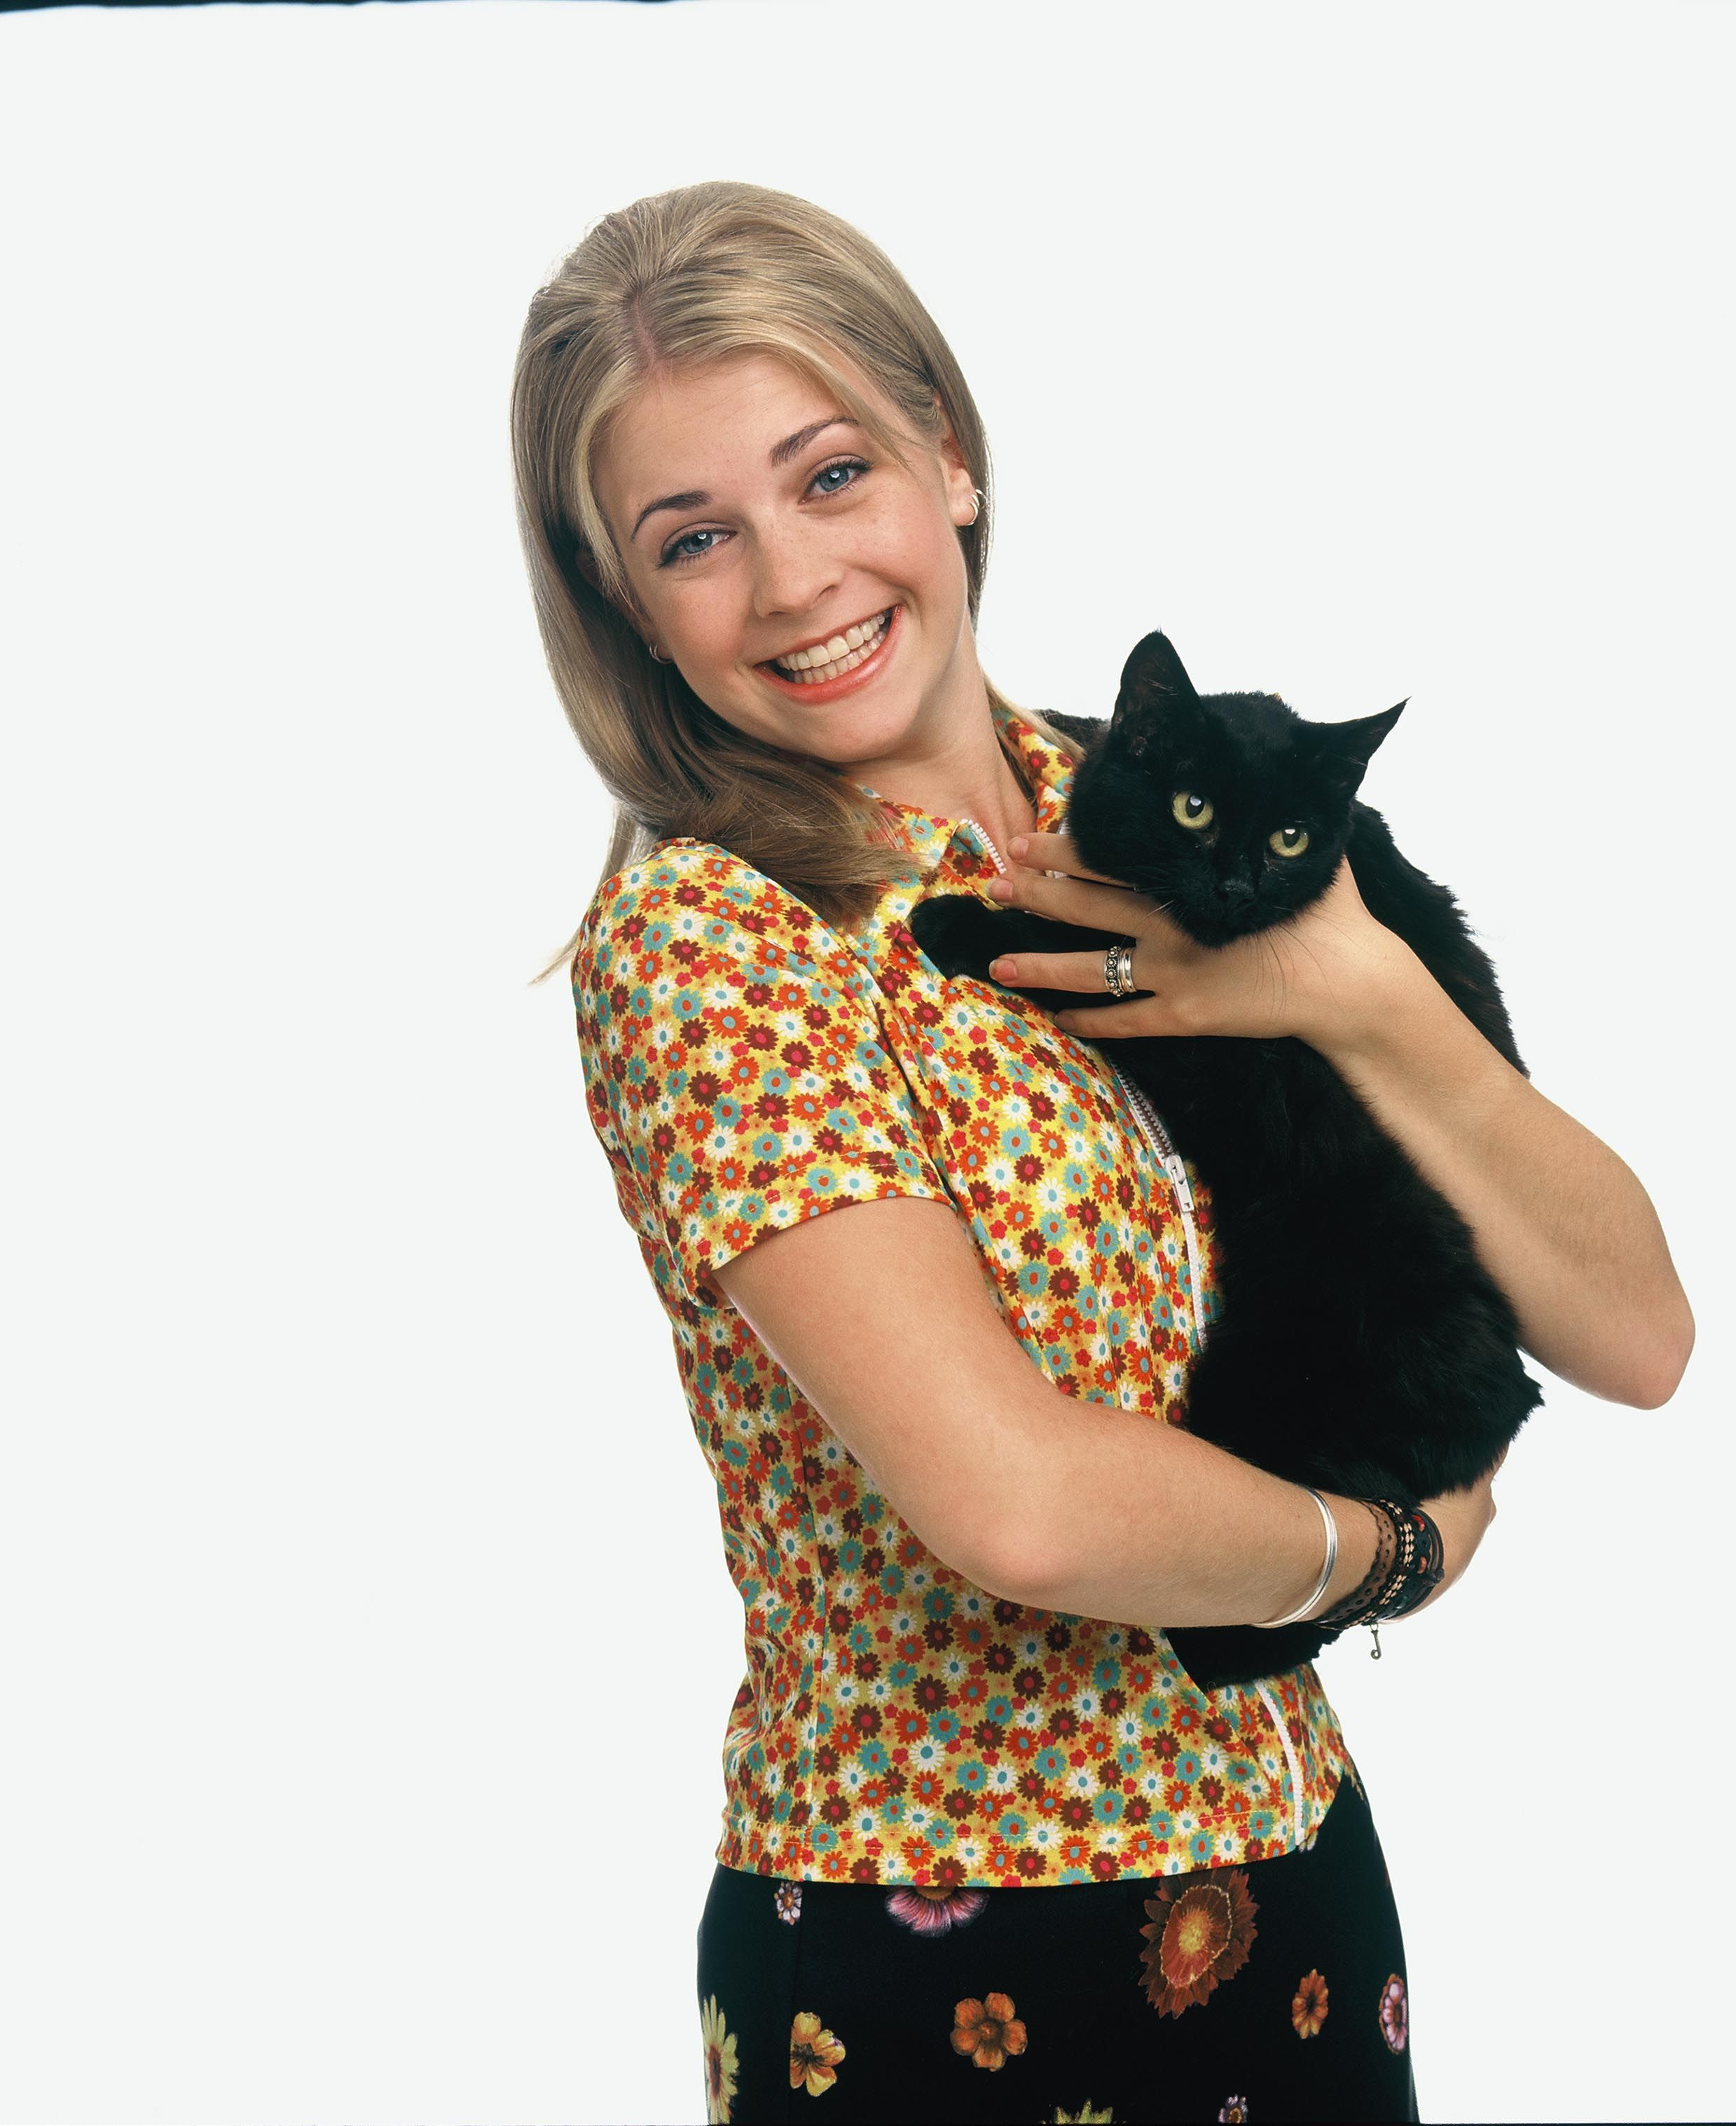 Watch the original Sabrina the Teenage Witch reunite with Salem in James Corden sketch